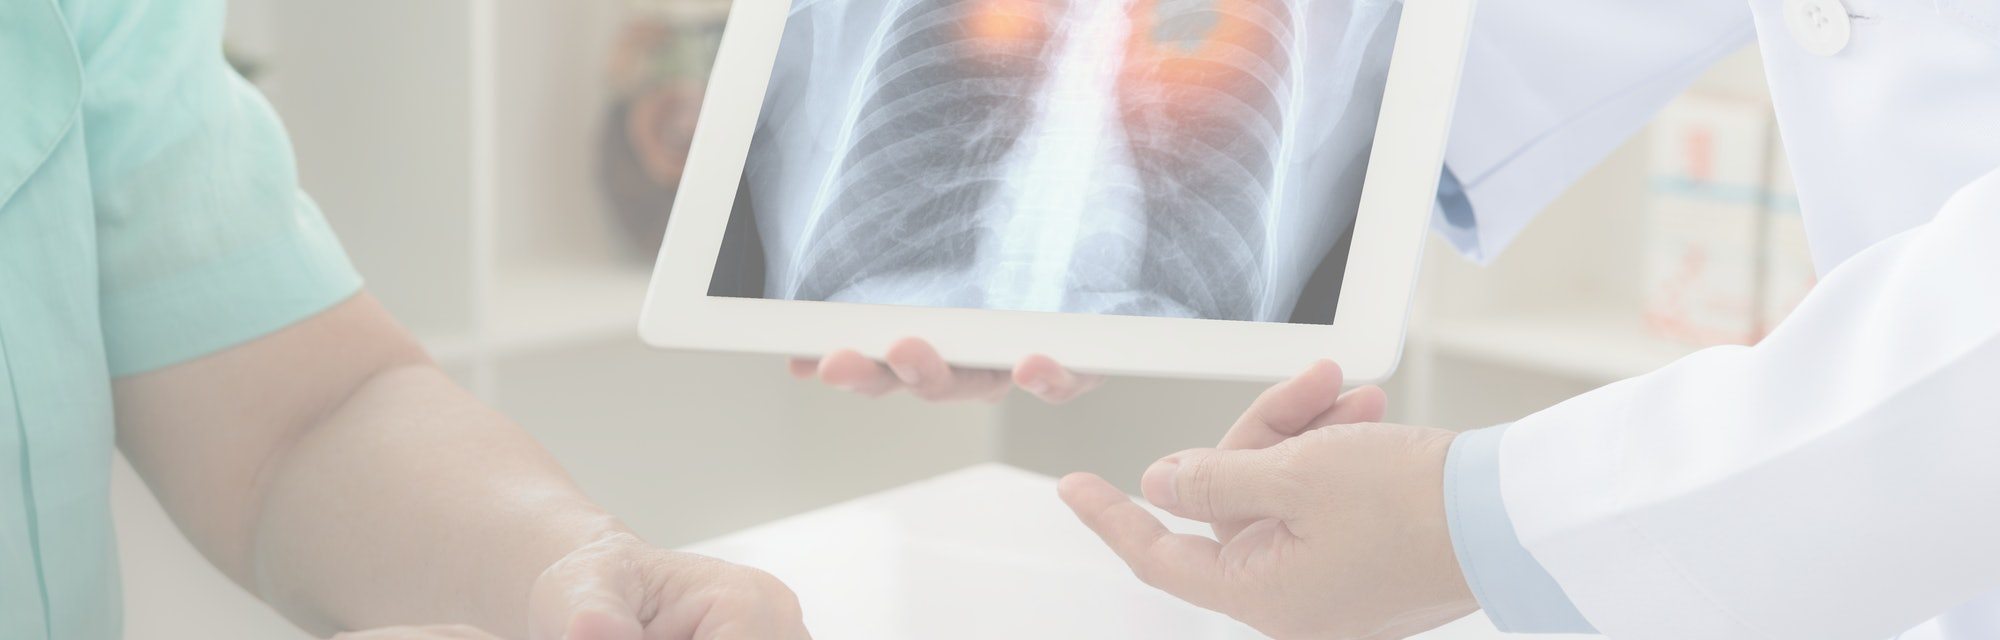 lung cancer concept. doctor explaining results of lung check up from x-ray scan chest on digital tablet screen to patient.